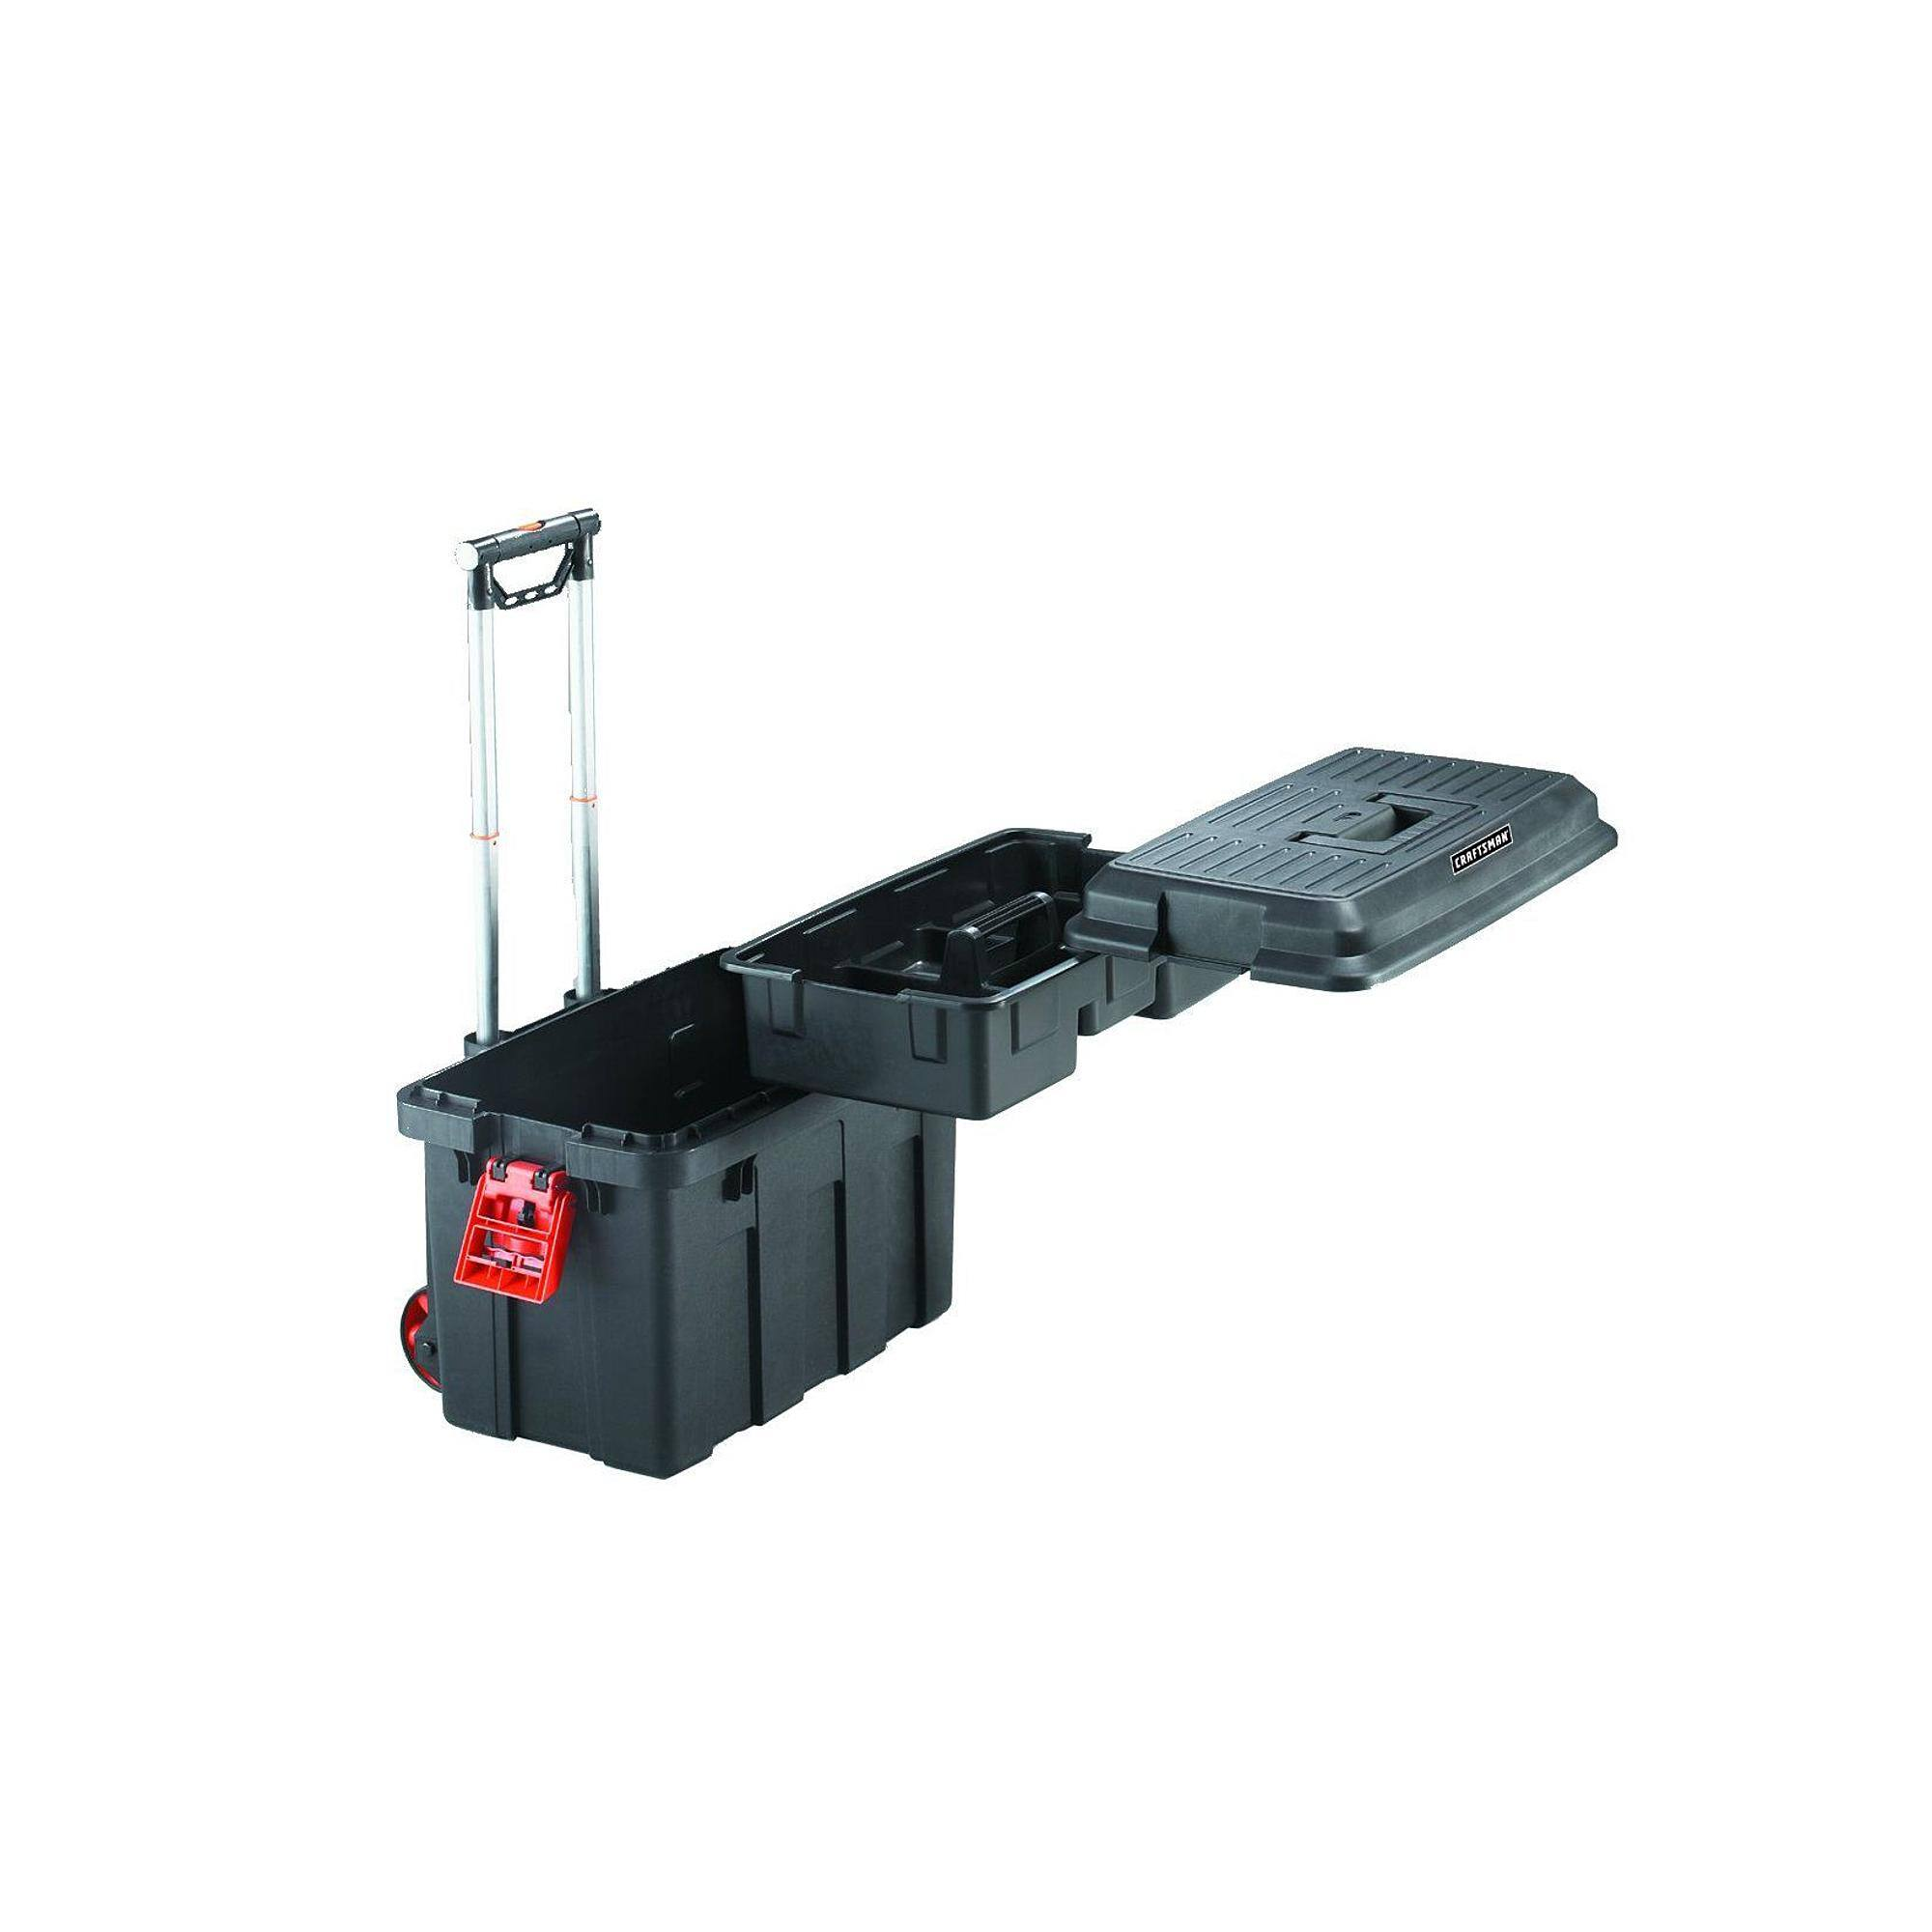 Craftsman Sit/Stand/Tote Truck $27@KMart